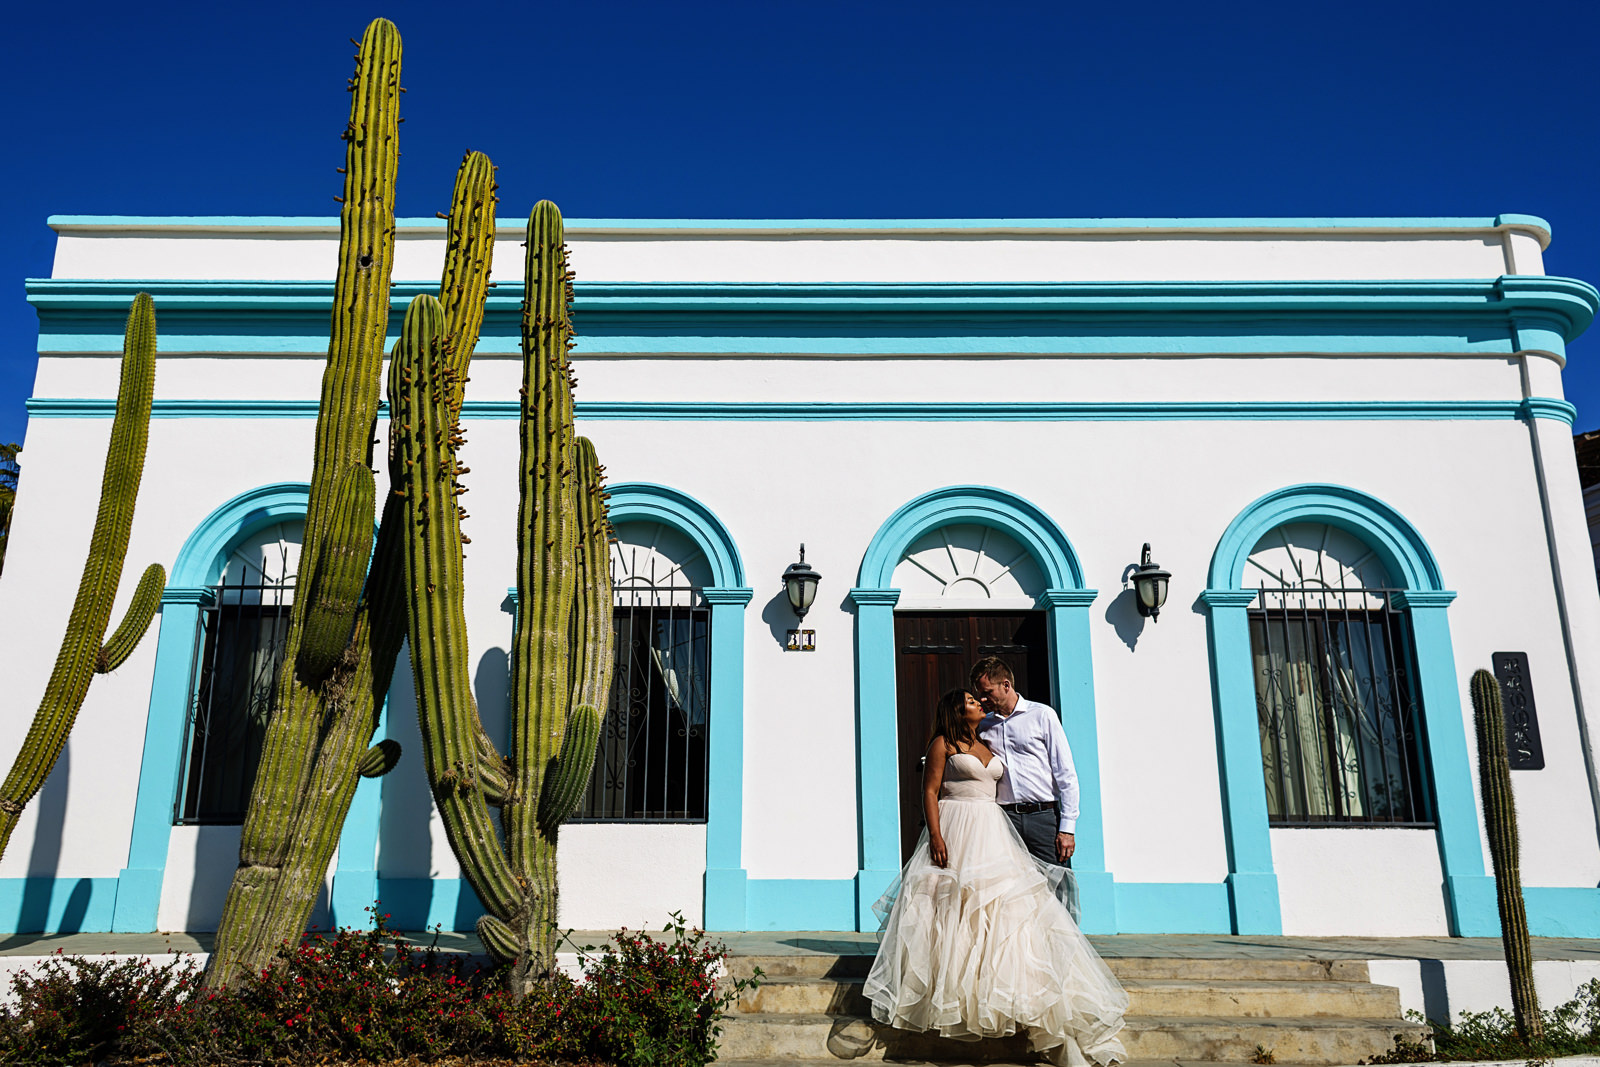 Bride and groom standing outside a Todos Santos house with a peculiar facade with a cactus